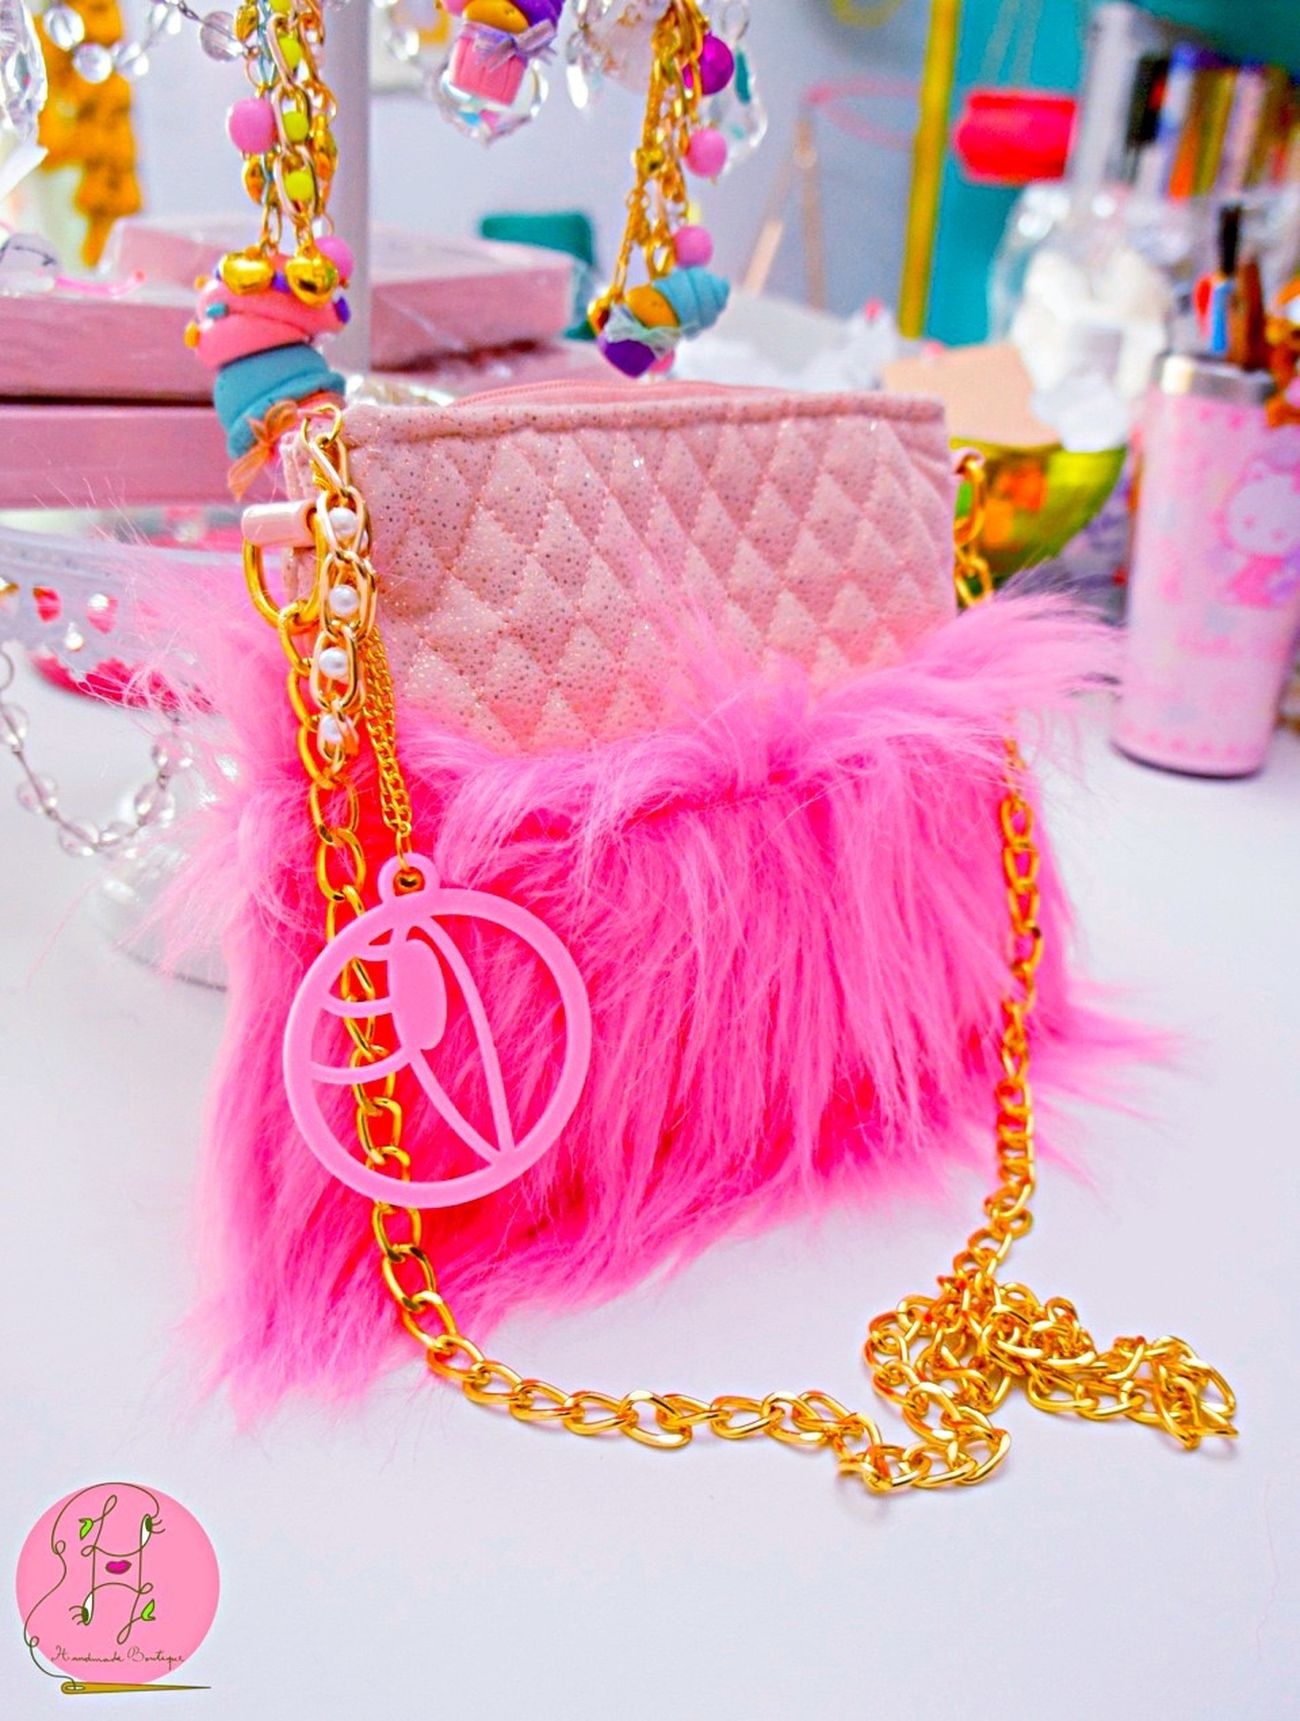 Pink sparkles crystal bag💎👧🏼🍭✨ Magical Sparkles Fuzzy Bright Handmade Design Monogram EyeEm Gallery Fantasy Hello World Boutique Bag Neobaroque Neobaroquequeen Happiness Twins Bagdesigner Bags Beautiful Etsy Studio California Laviniafenton Eye4photography  Colors